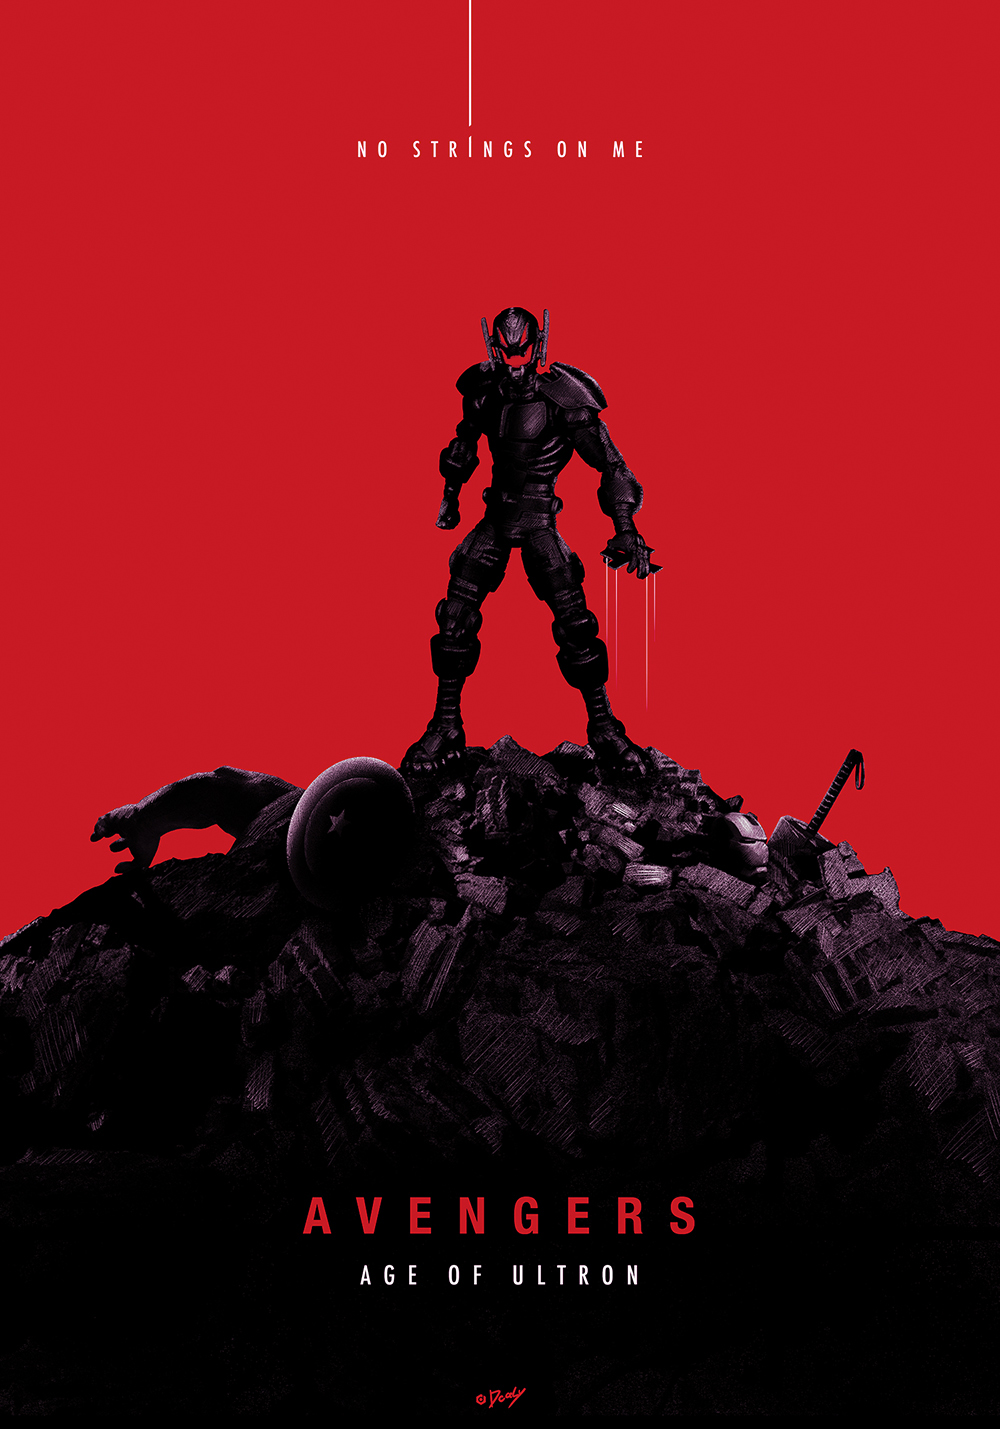 poster fan art age of ultron